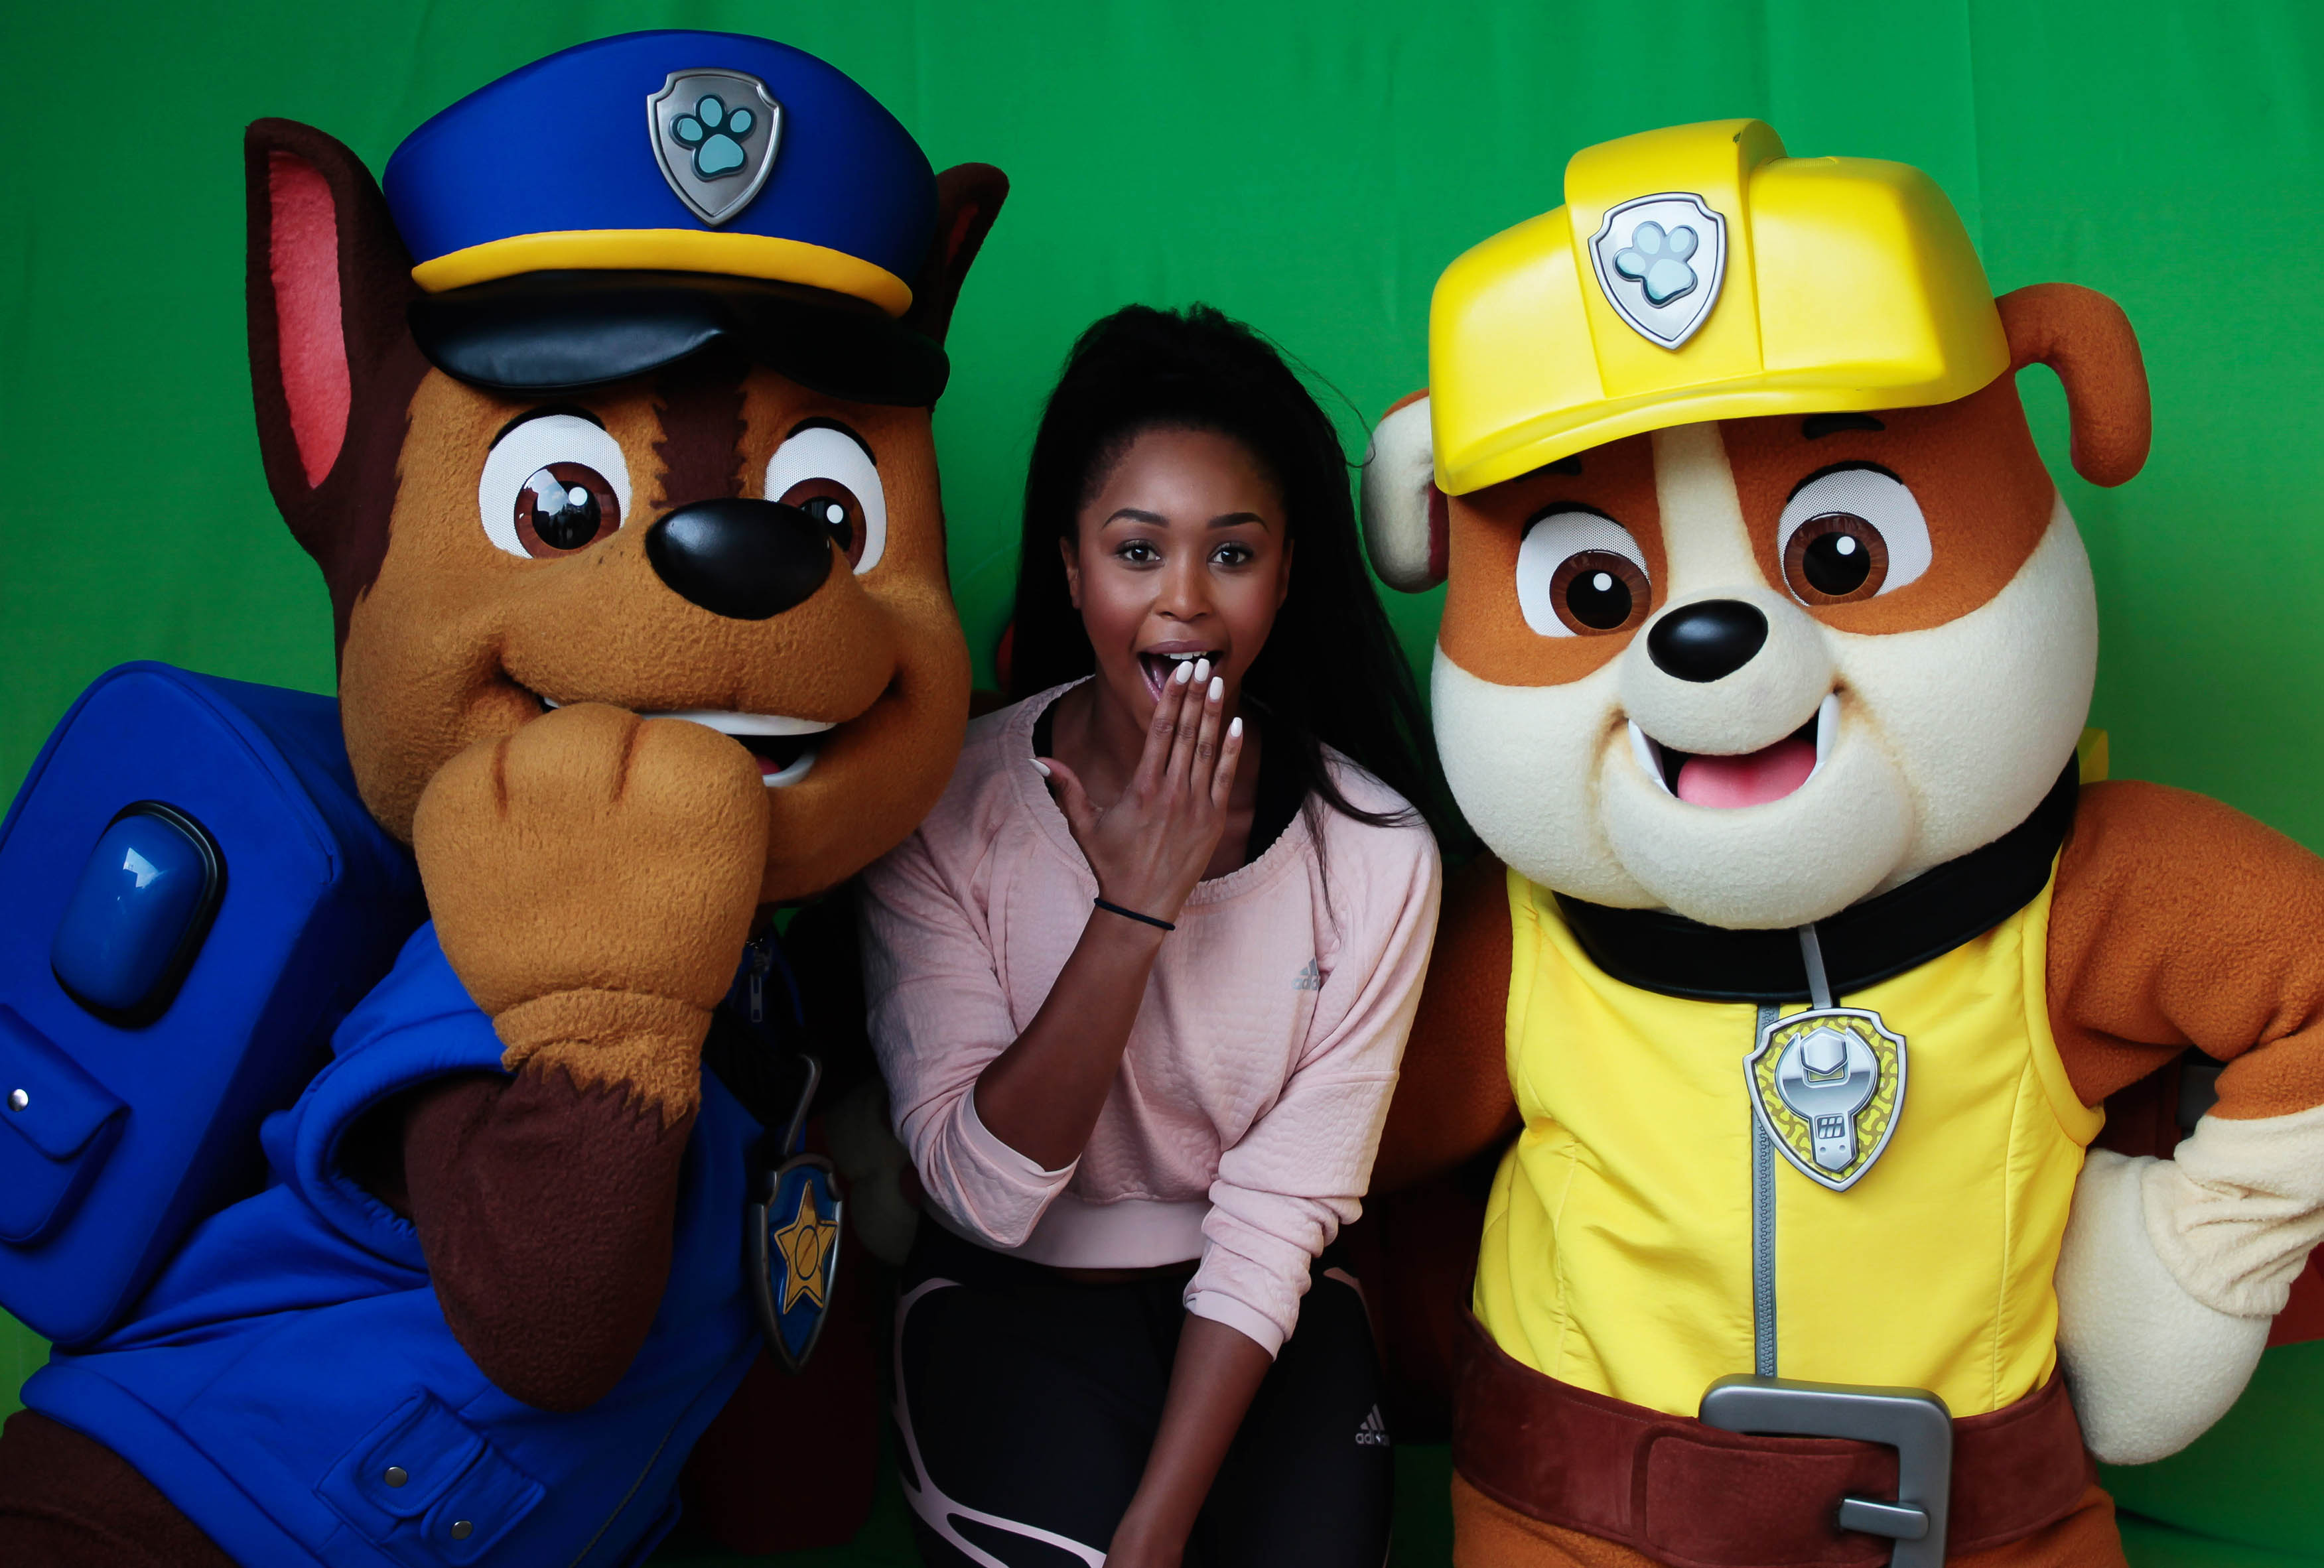 Minnie Dlamini and Paw Paw Patrol | Image credit Nickelodeon